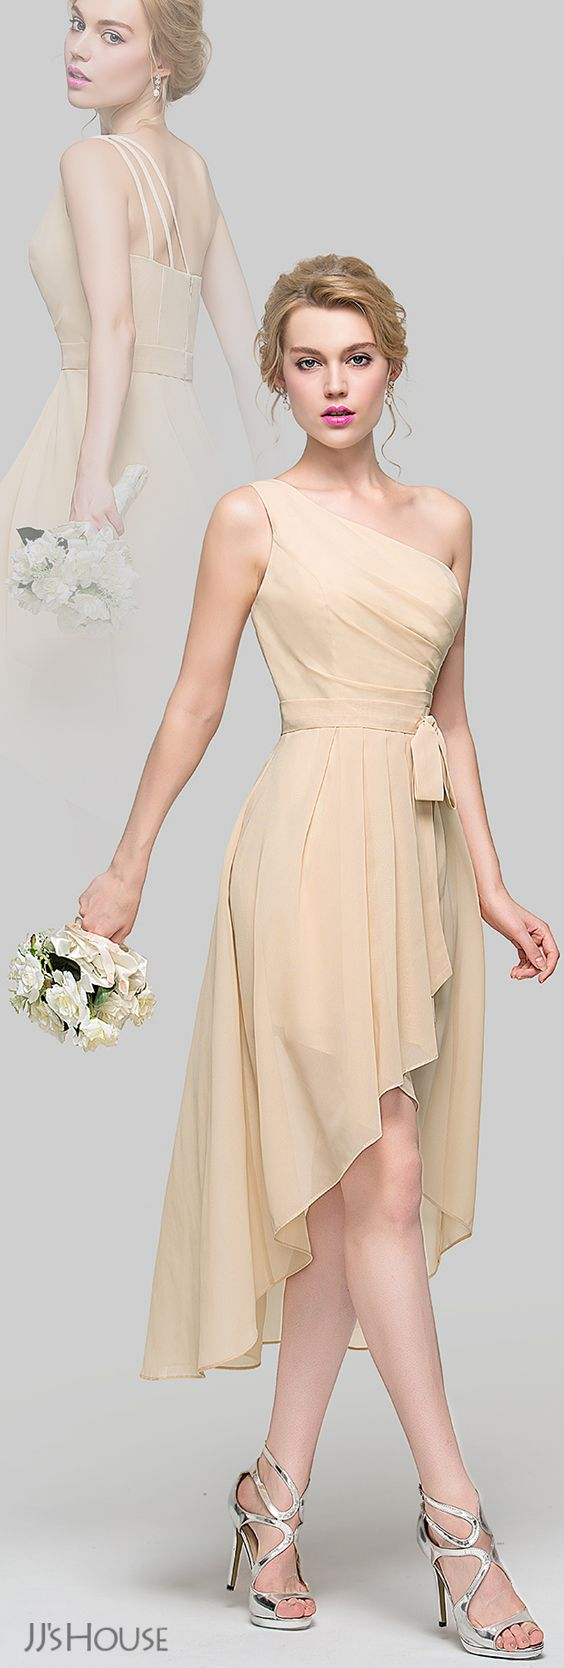 Best 25 cream bridesmaid dresses ideas on pinterest tan best 25 cream bridesmaid dresses ideas on pinterest tan bridesmaid dresses greek bridesmaid dresses and cream bridesmaids ombrellifo Choice Image